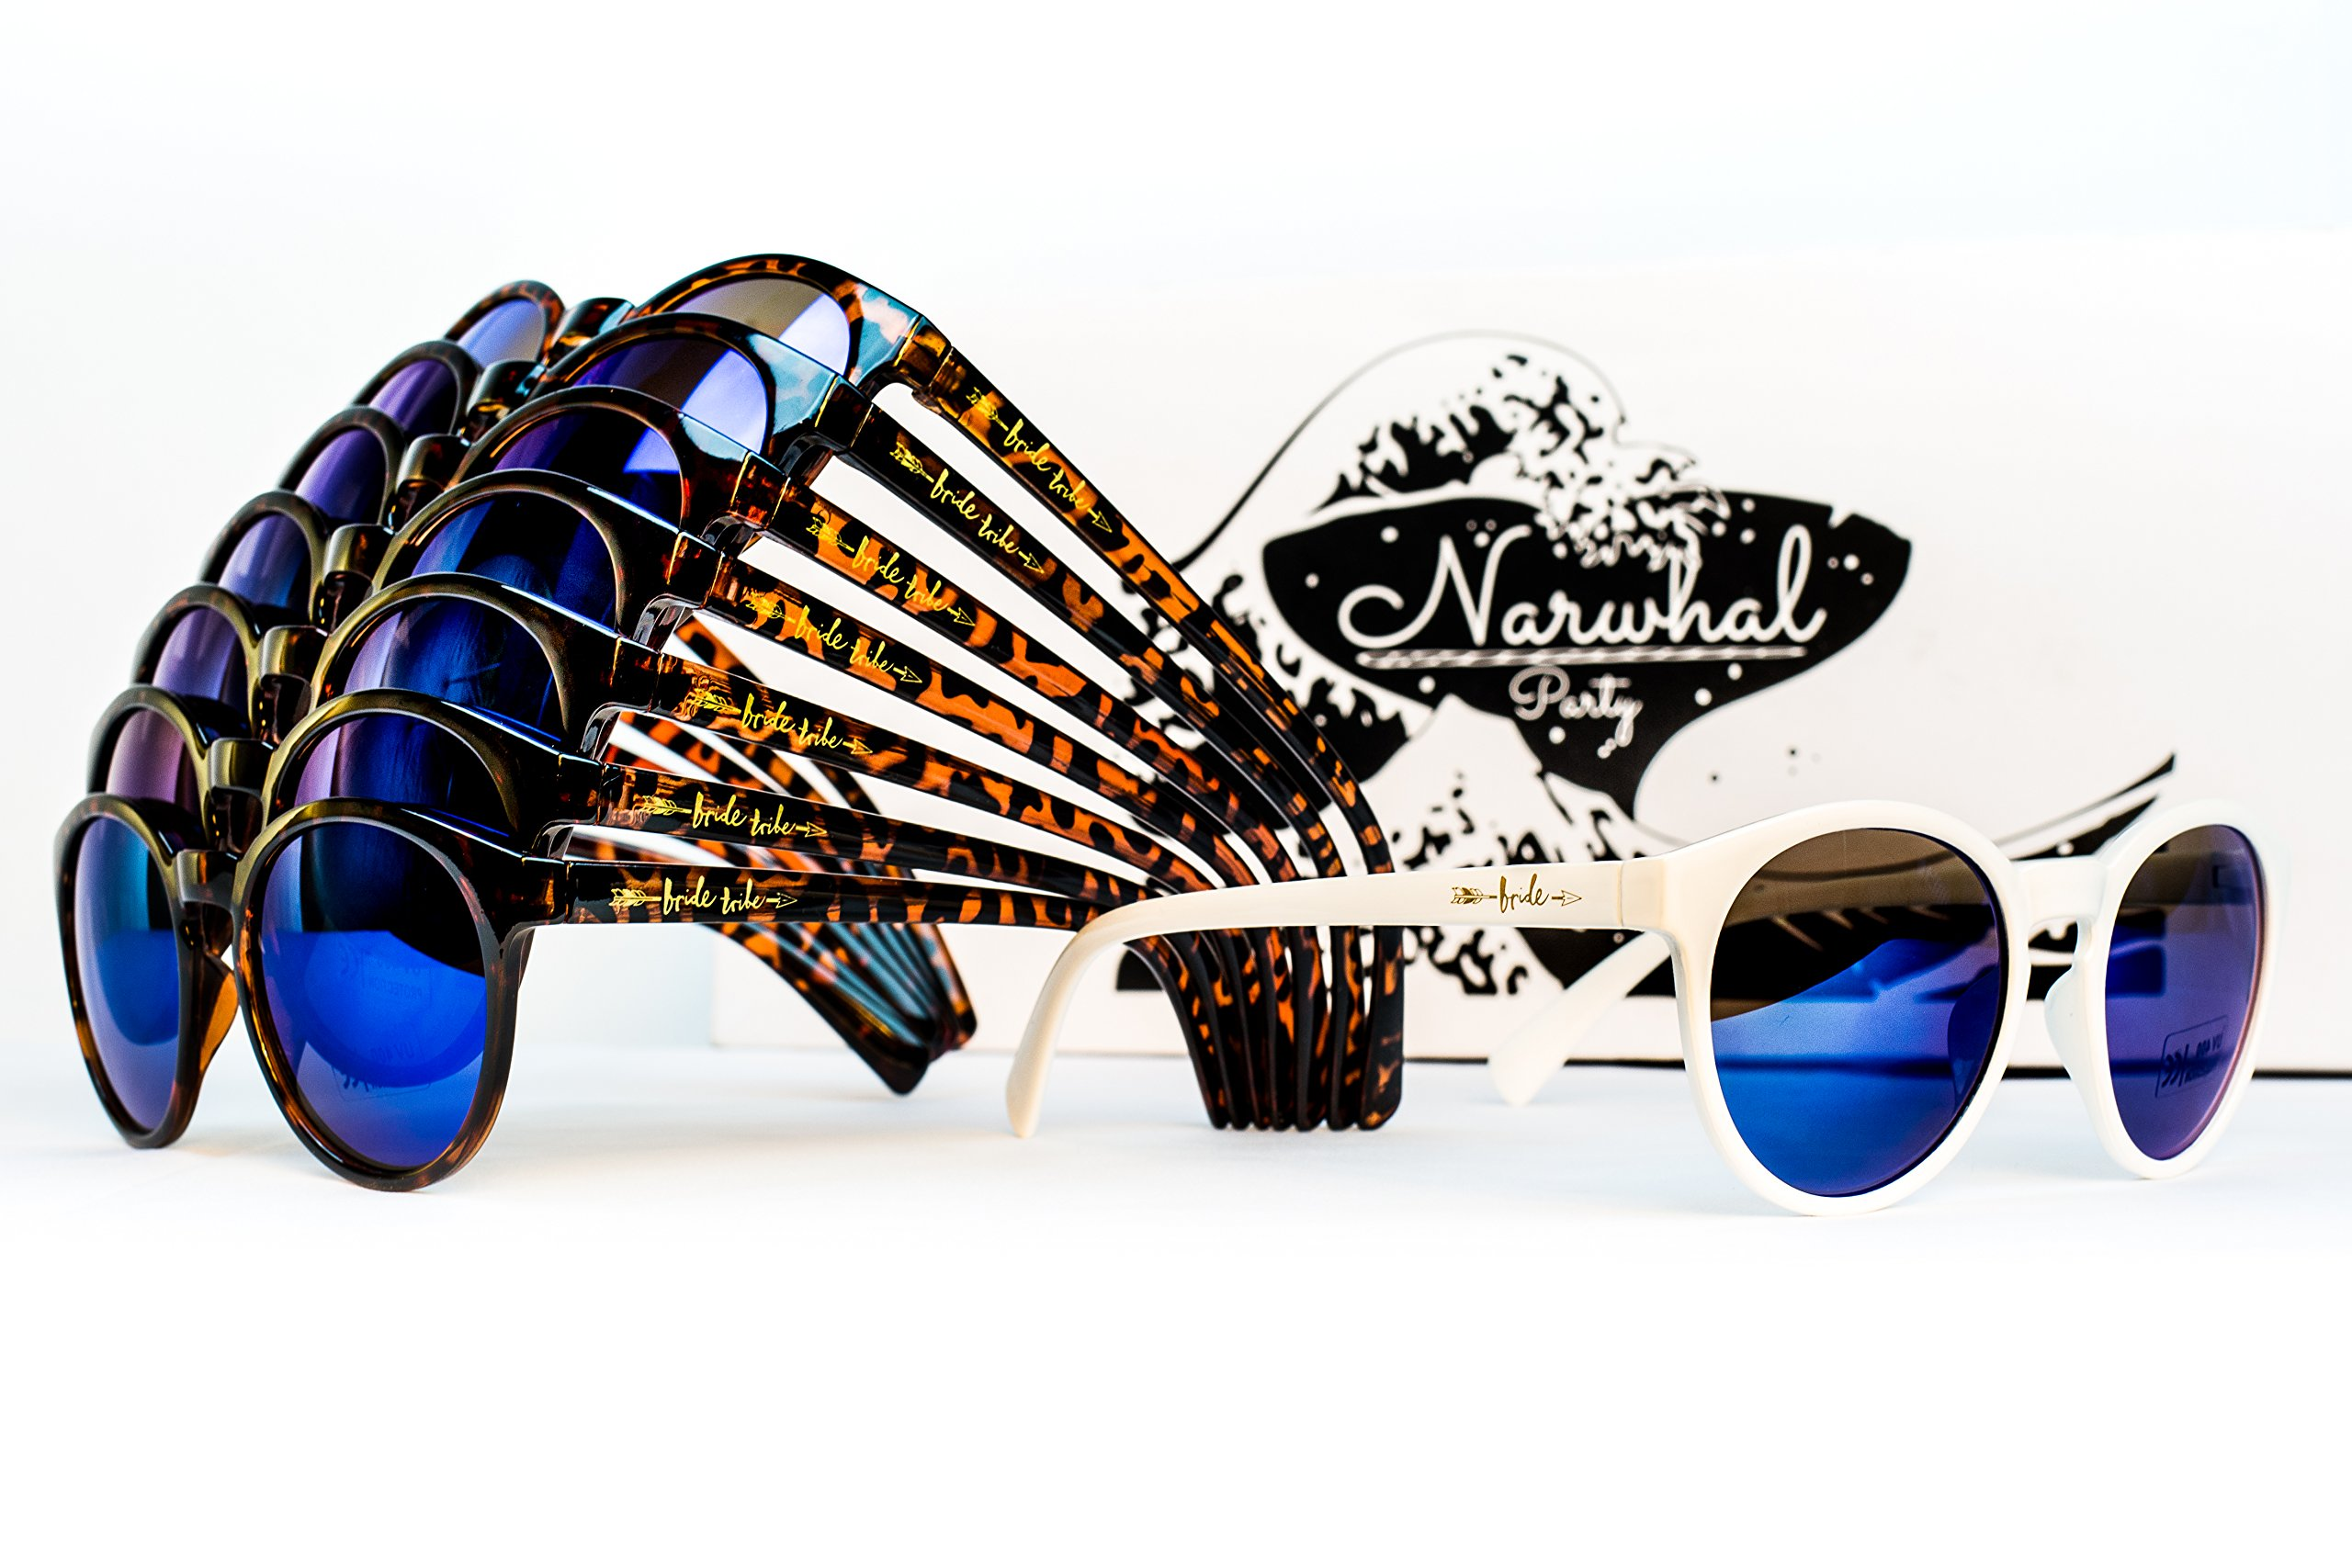 Bride Tribe Sunglasses by Narwhal Party - 1 Pair of White and 7 Pairs of Tortoise Shell Glasses with Blue Mirror Lenses are Perfect for Bridesmaids, Bridal Party Favors, and Bachelorette Parties